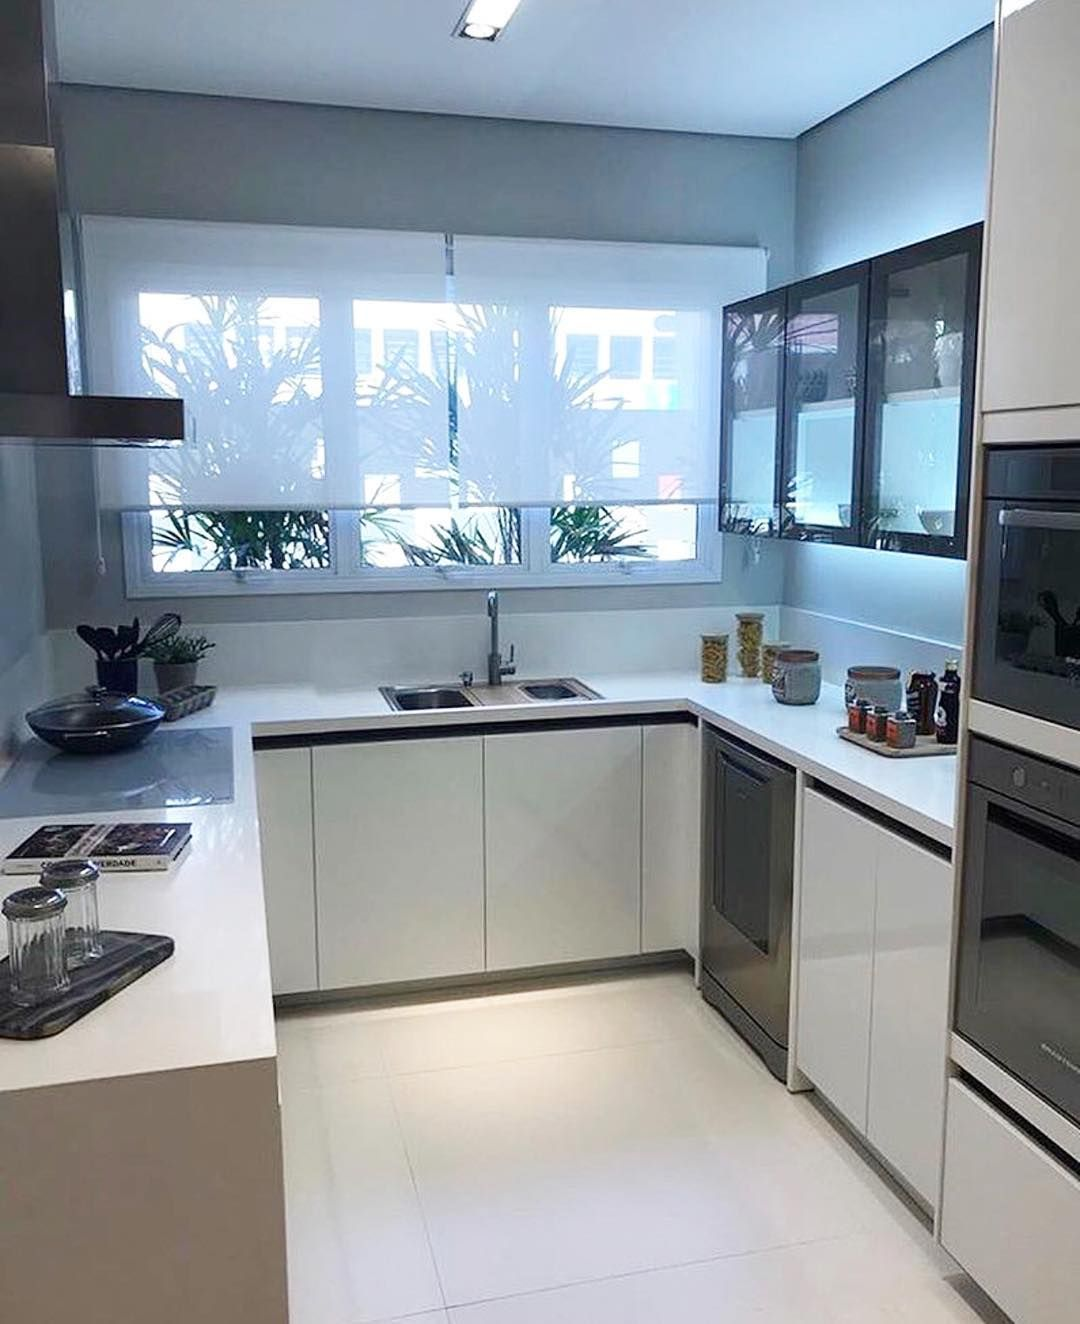 rideau | cuisine | Pinterest | Kitchens, Interiors and House